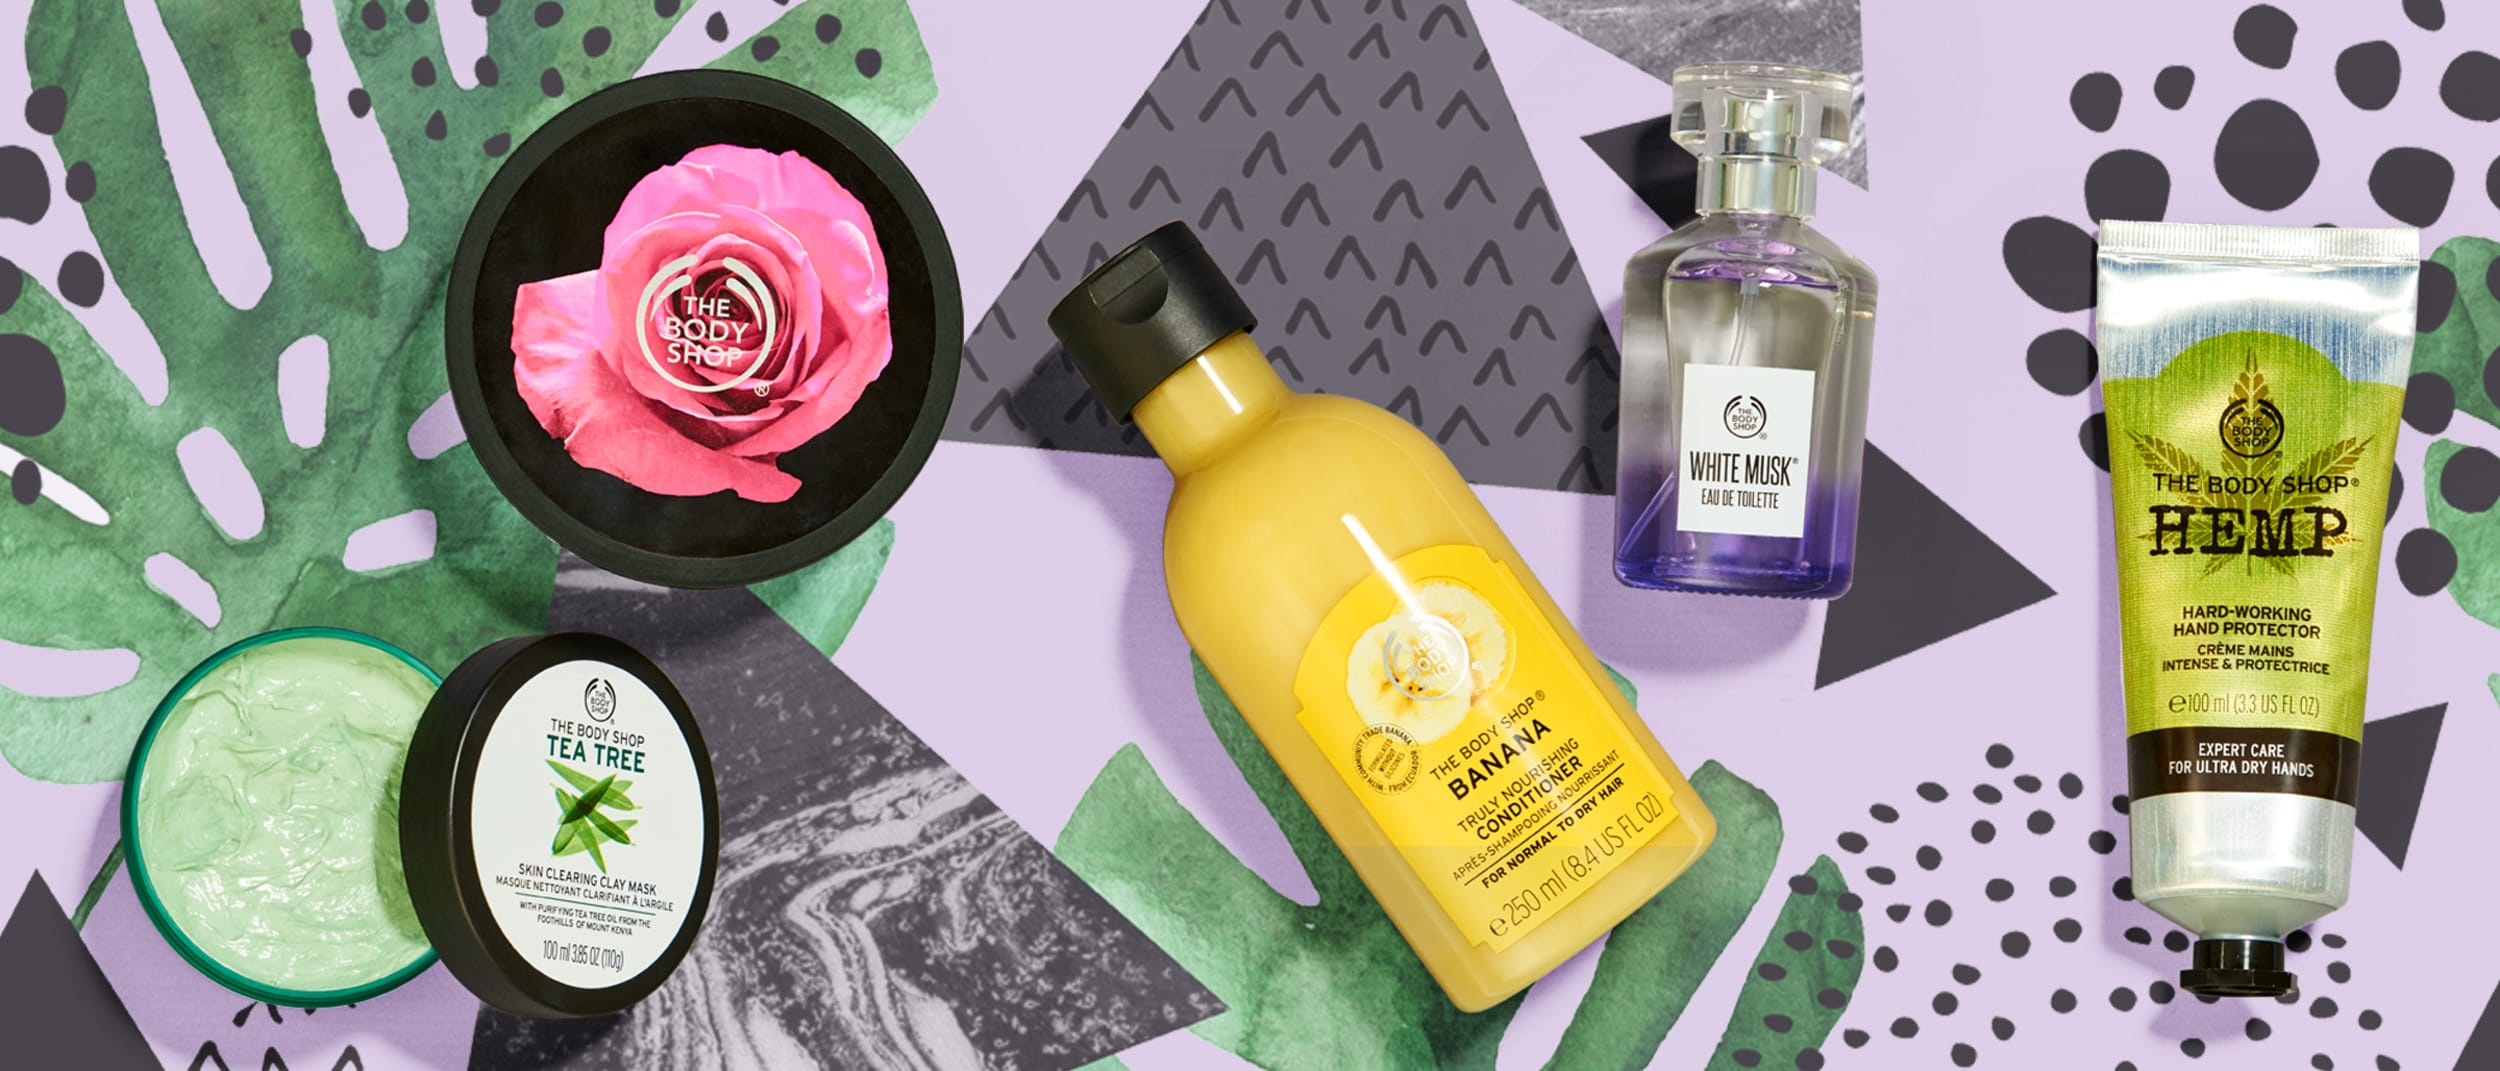 The Body Shop: Limited Edition Lunar New Year deals